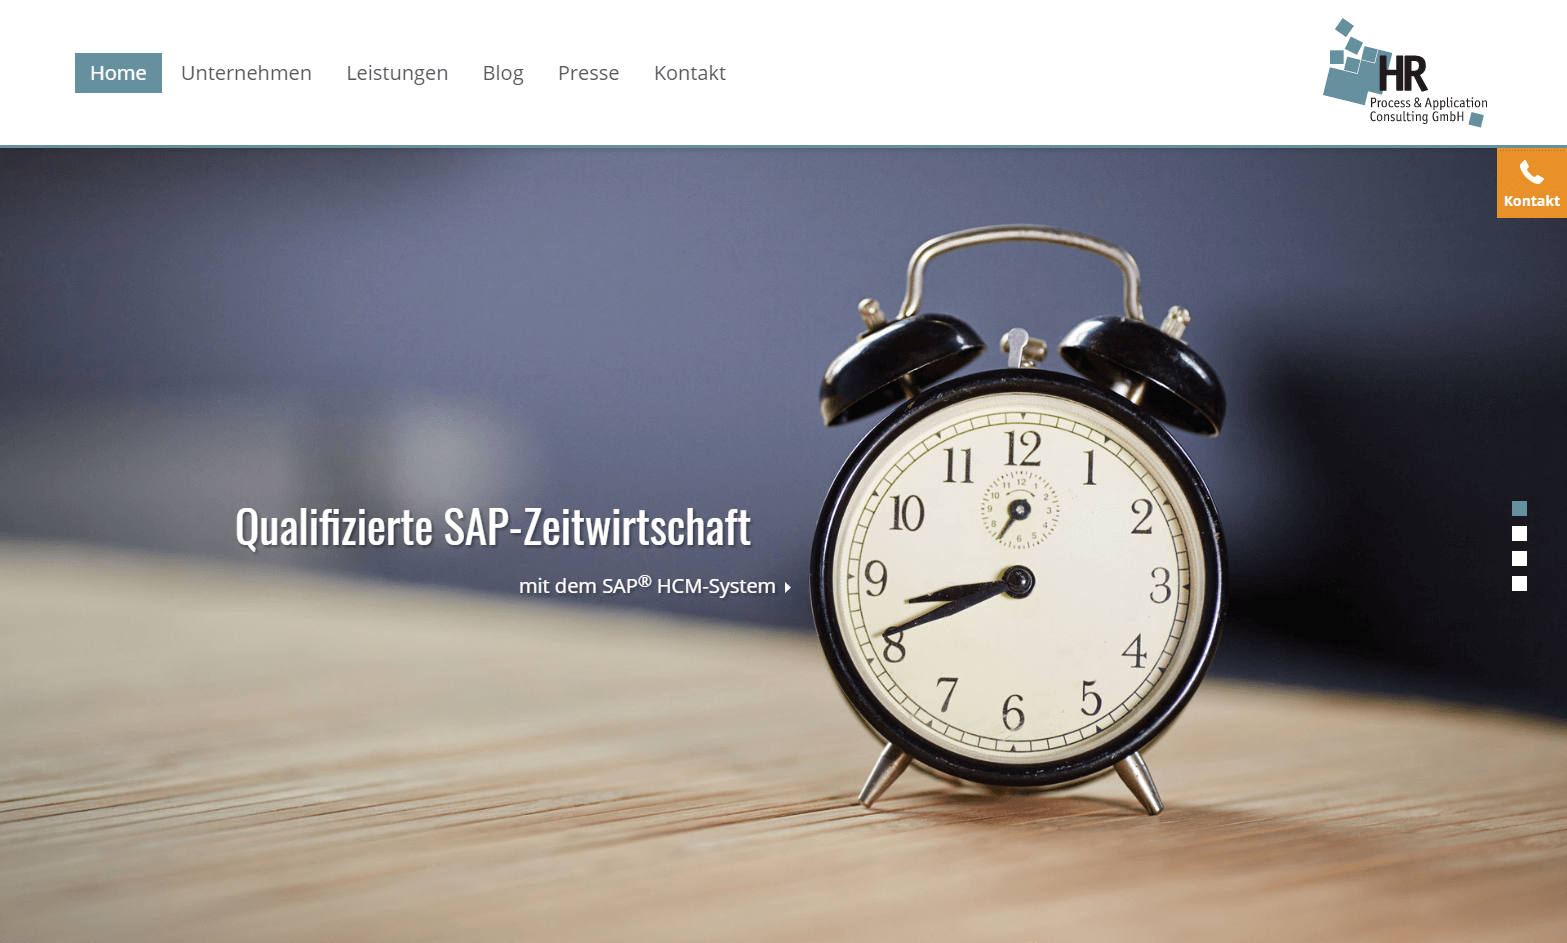 Contao Webdesign Roetgen: HR Process & Application Consulting GmbH